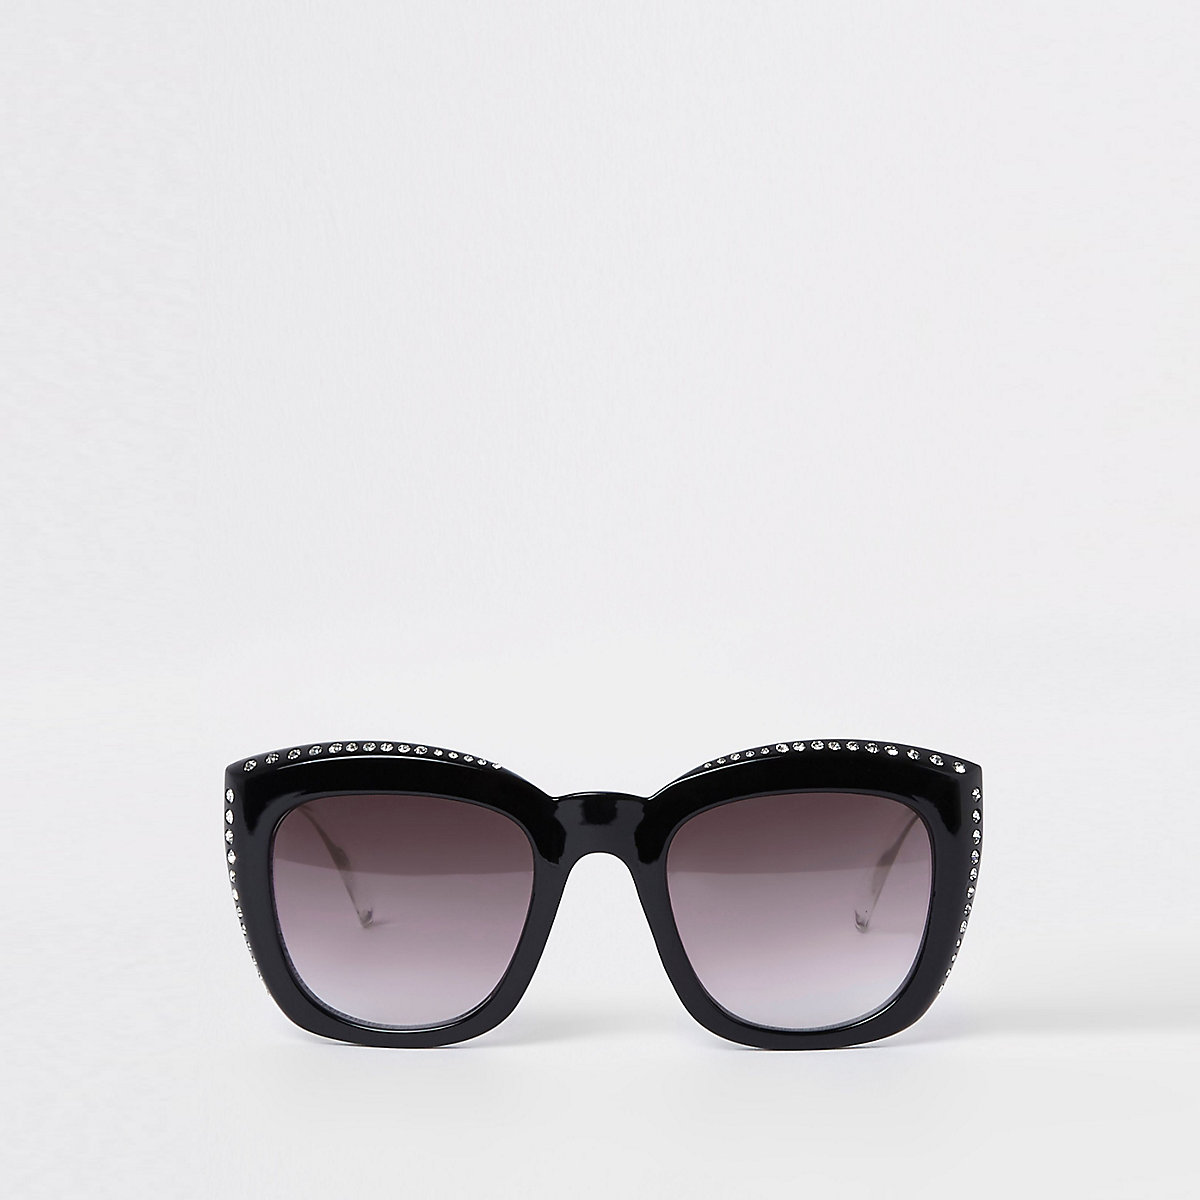 Black rhinestone studded glam sunglasses